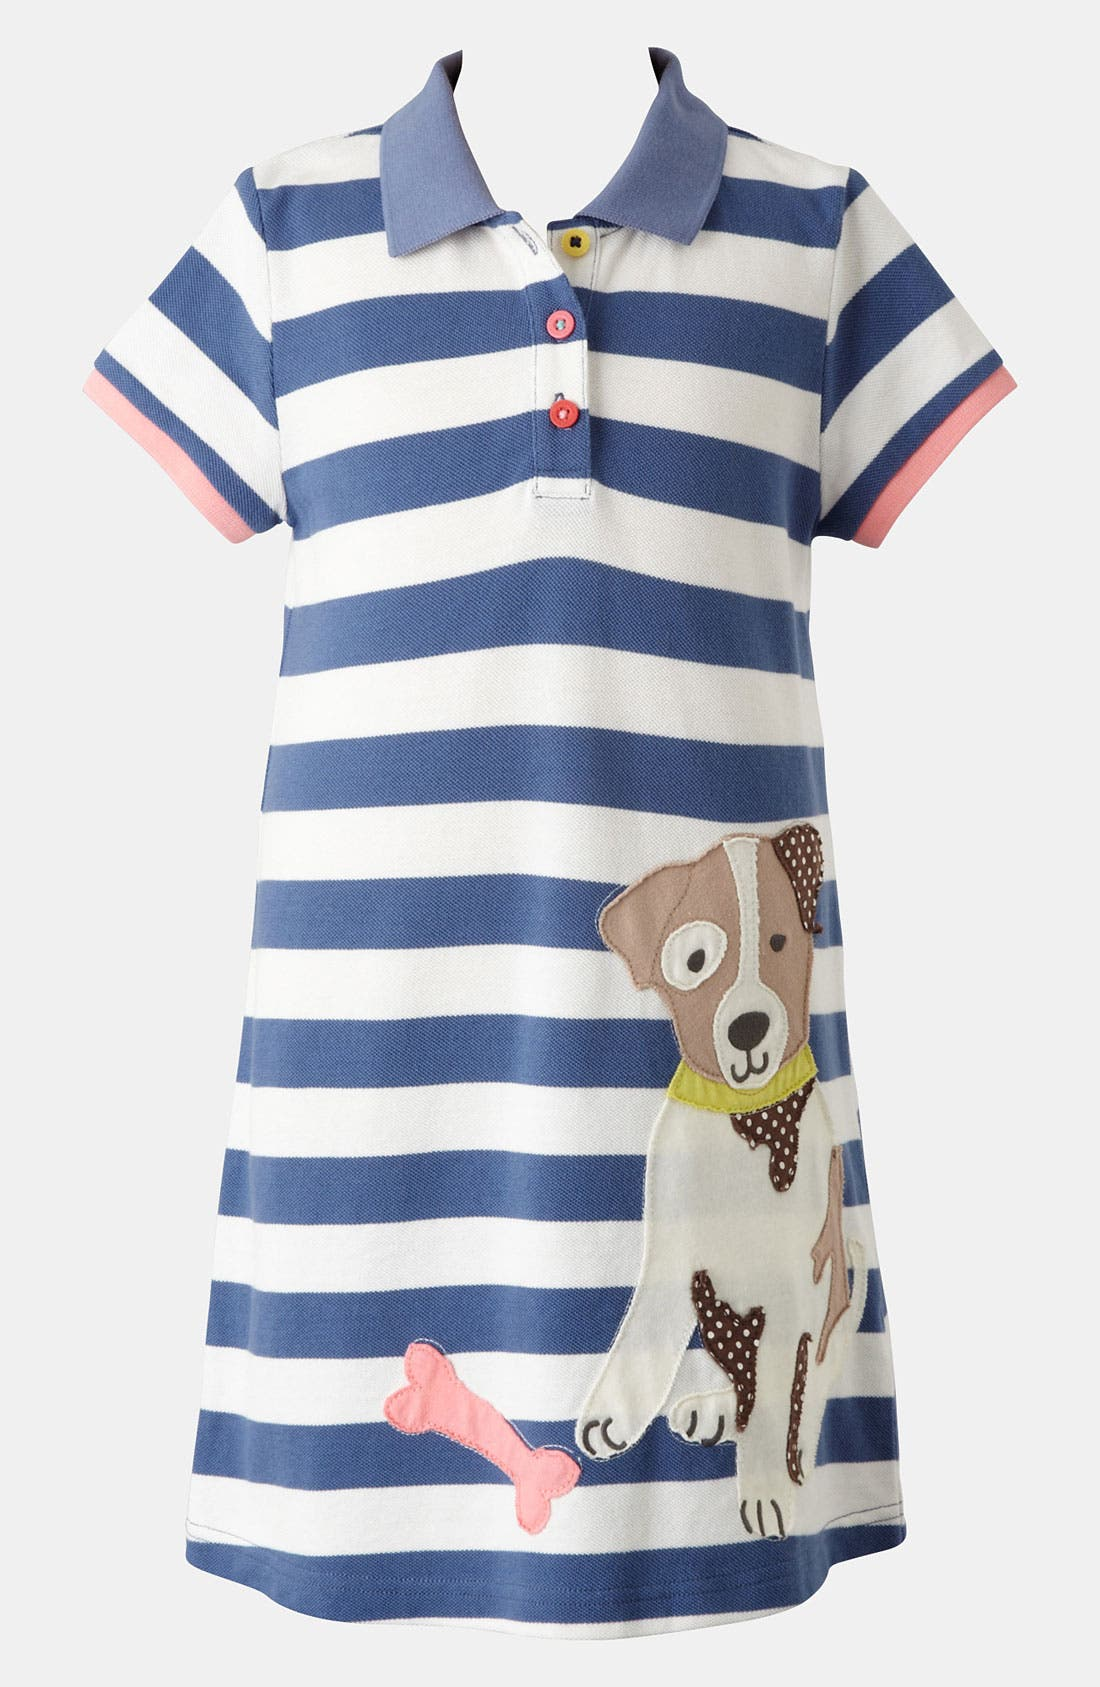 Main Image - Mini Boden 'Fun' Appliqué Polo Dress (Toddler, Little Girls & Big Girls)